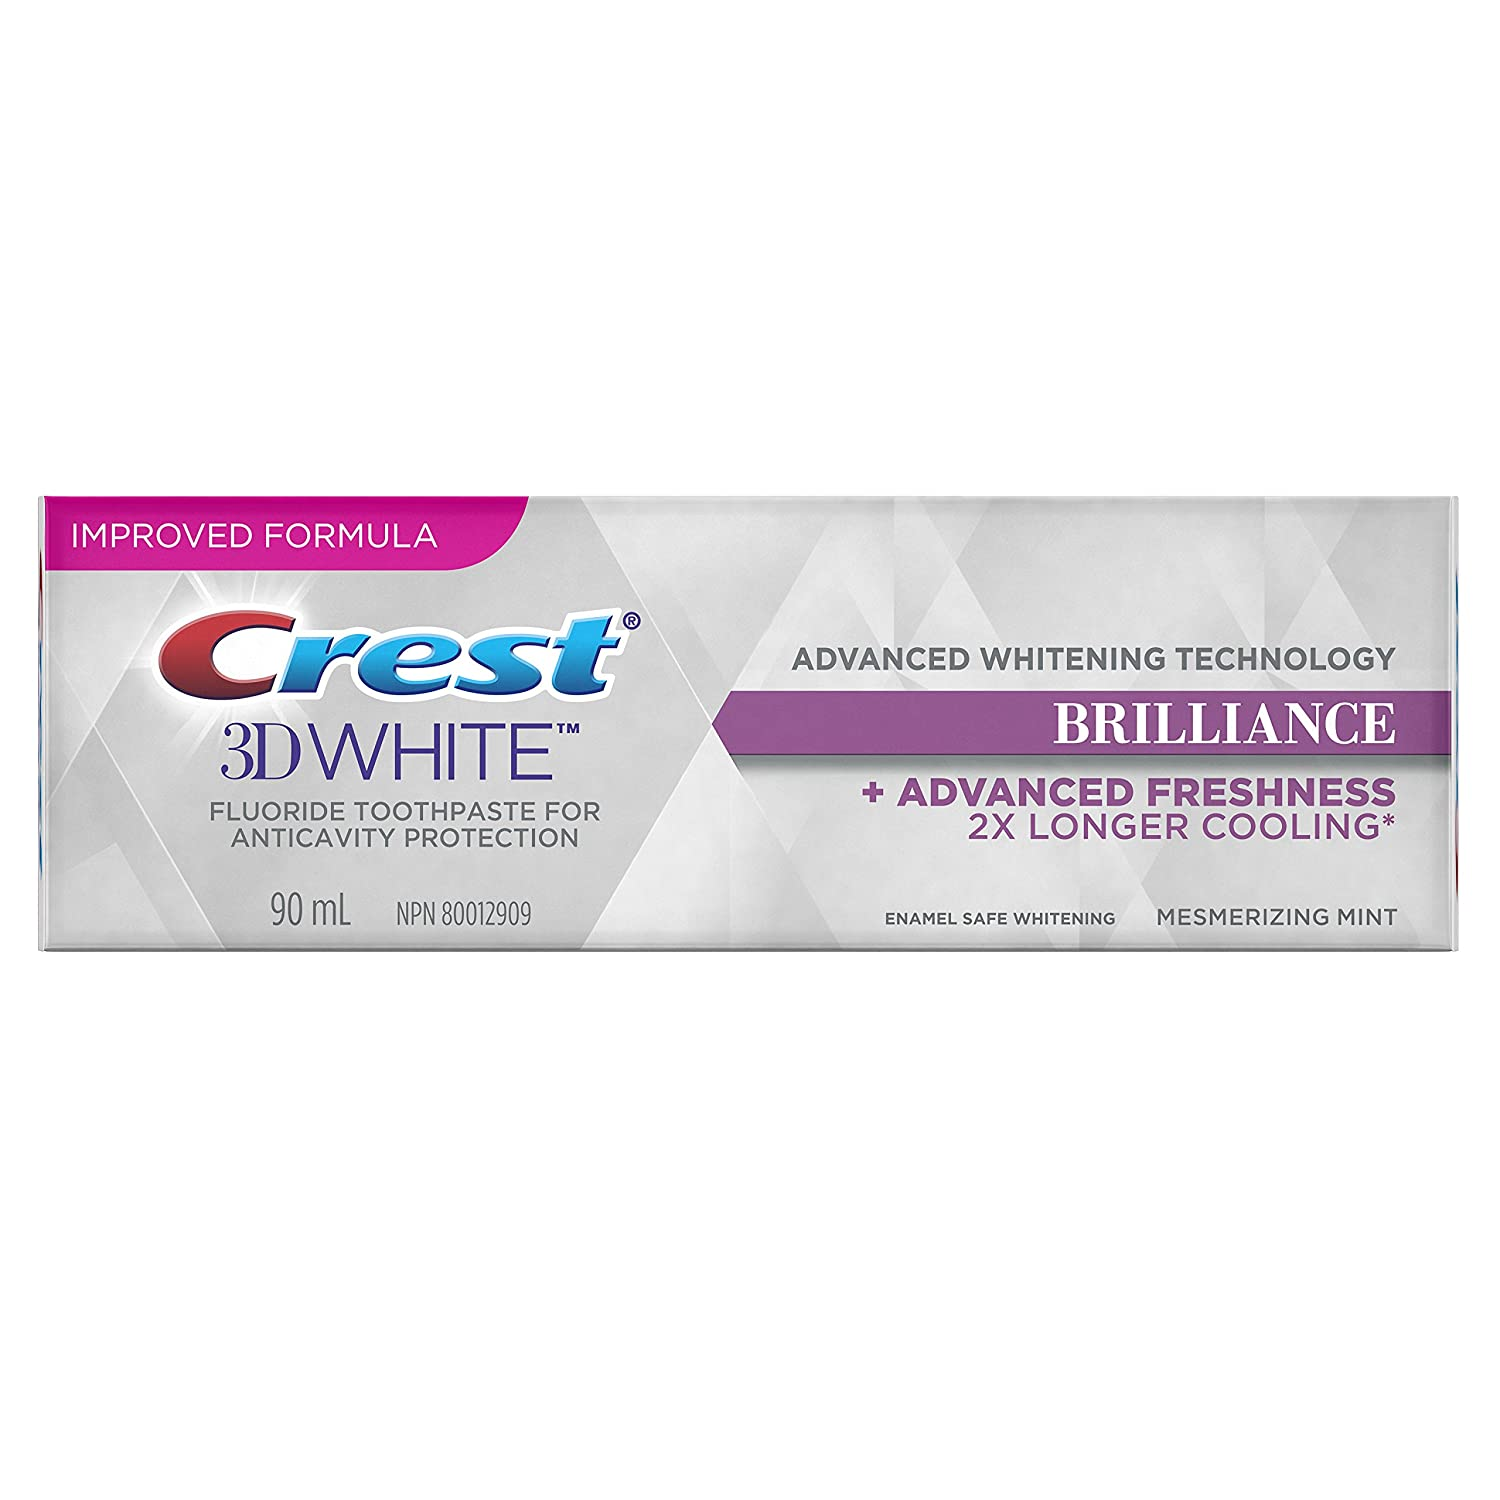 Crest 3D White Brilliance Vibrant Peppermint Whitening Toothpaste - 90 mL